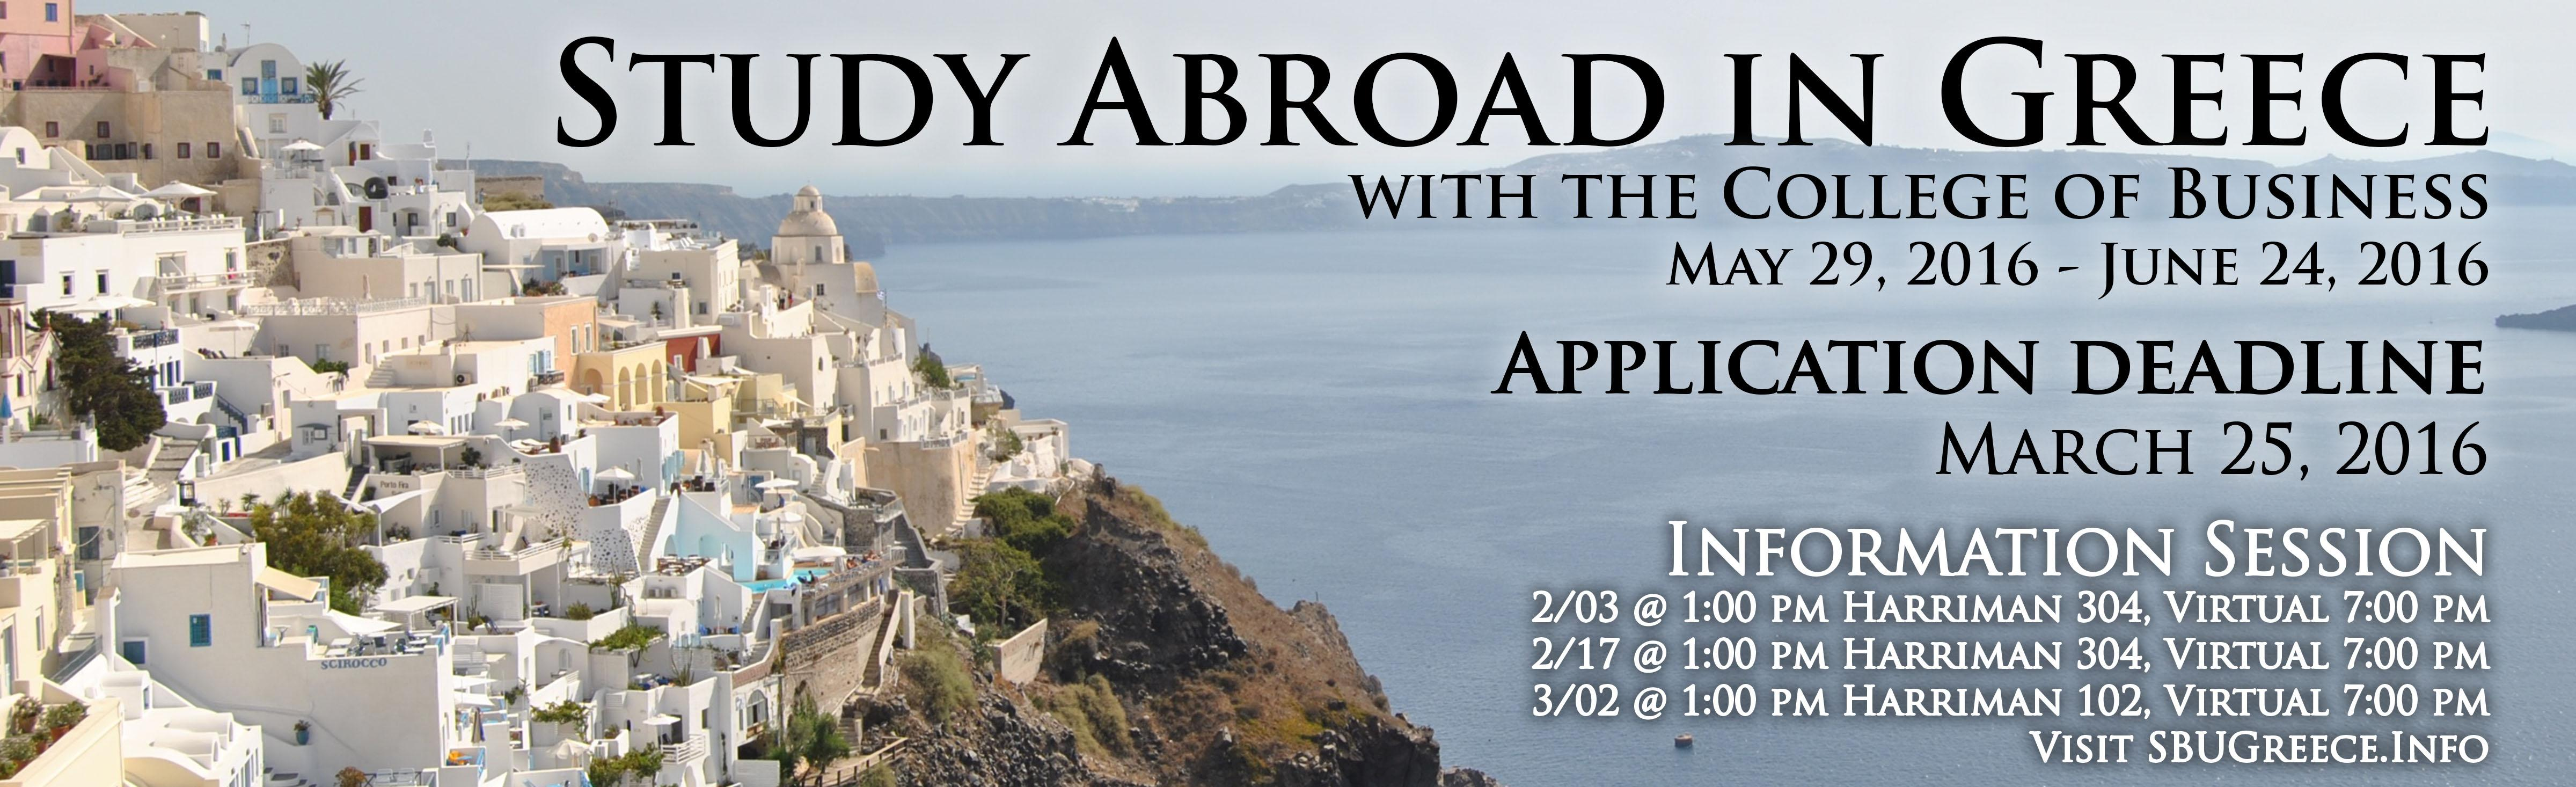 Study Abroad in Greece with the College of Business